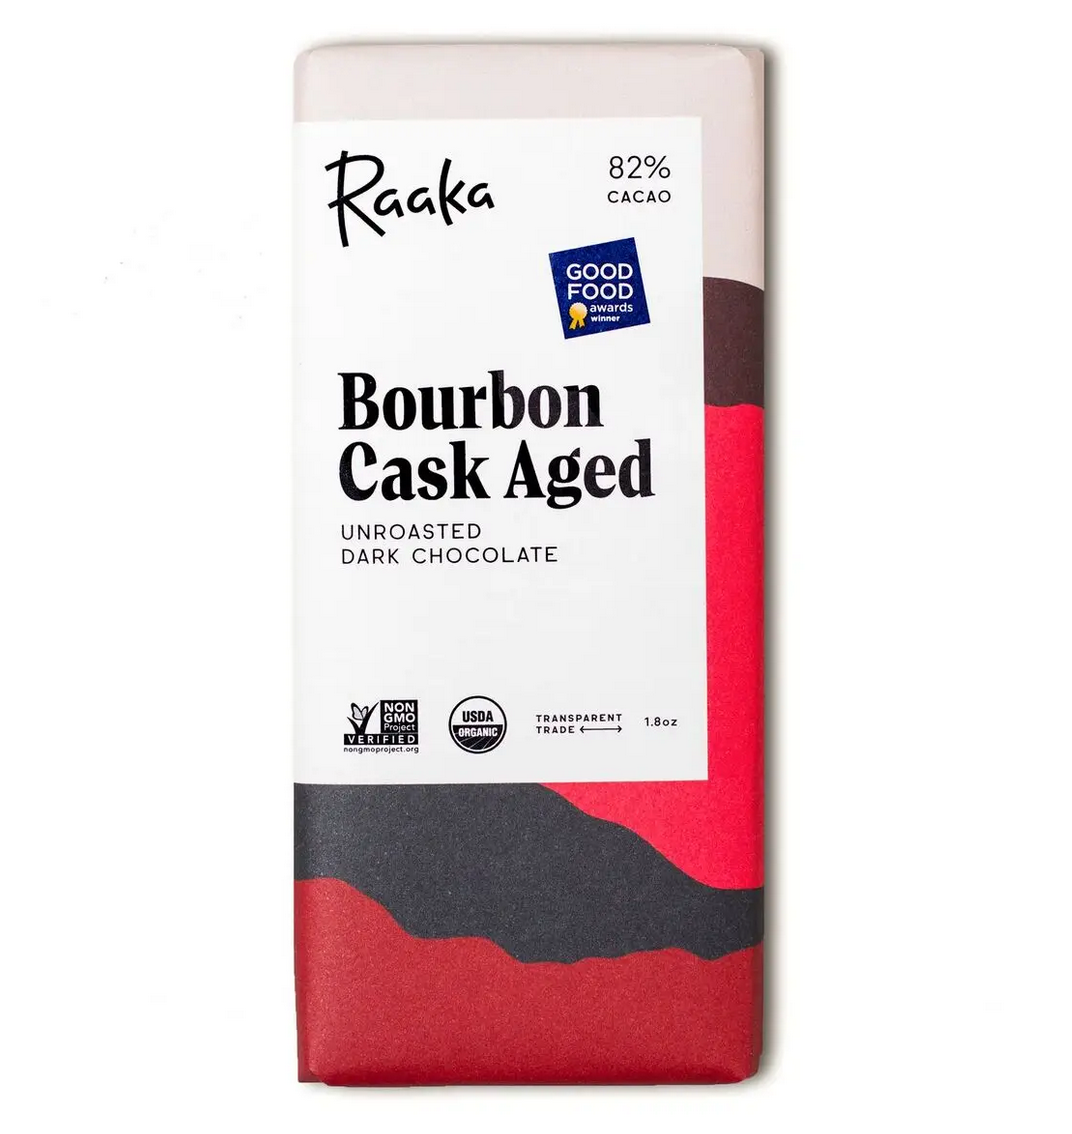 Raaka Chocolate 82% Bourbon Cask Aged Chocolate Bar